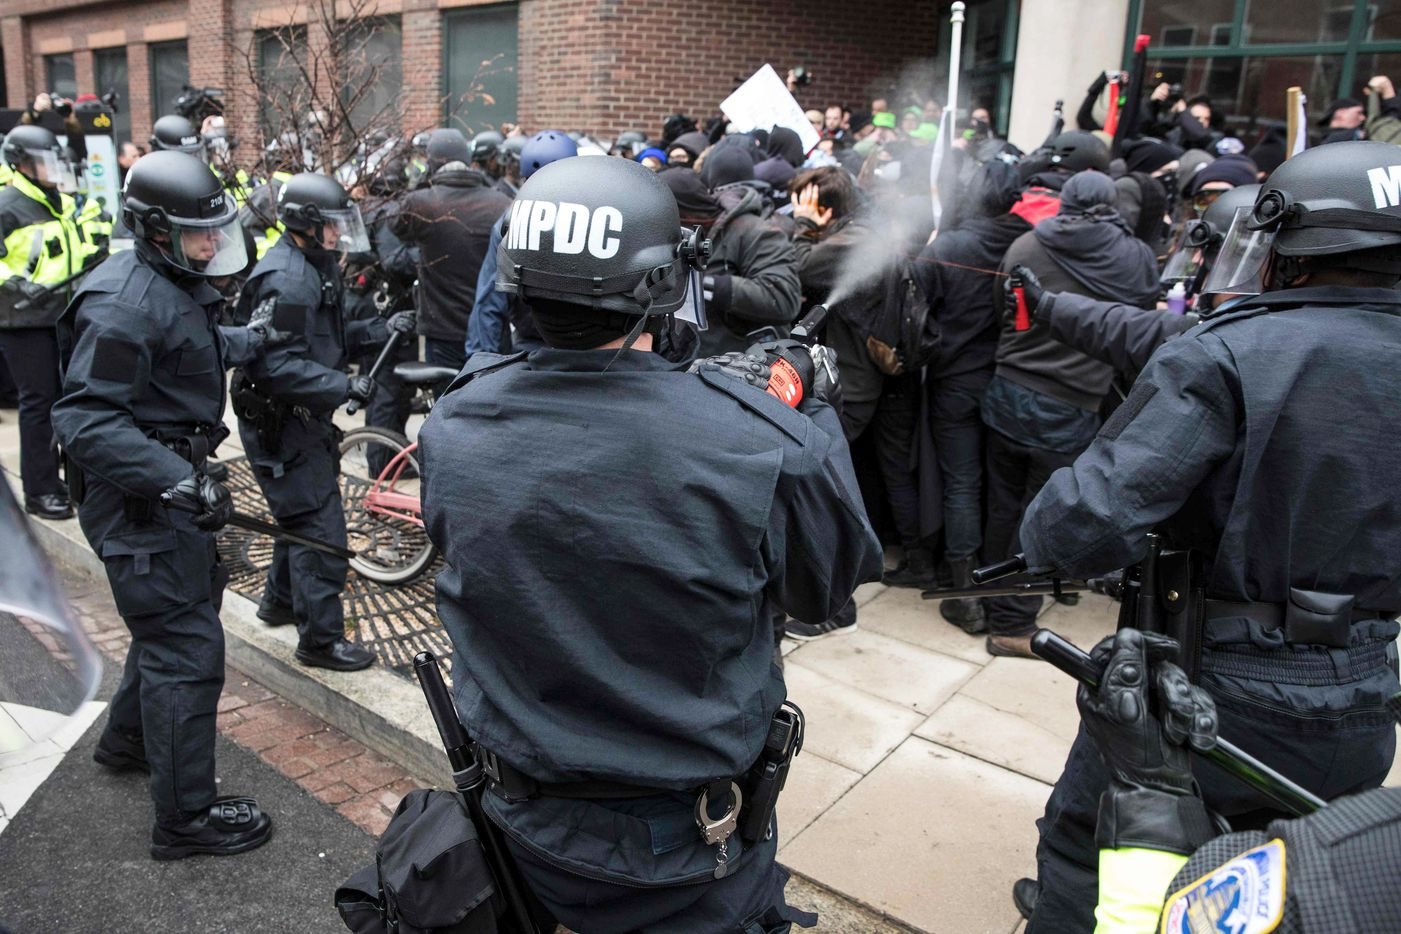 Police officers pepper spray a group of protestors before the inauguration of President-elect Donald Trump January 20, 2017 in Washington, DC.     Donald Trump was sworn in as the 45th president of the United States Friday -- capping his improbable journey to the White House and beginning a four-year term that promises to shake up Washington and the world.